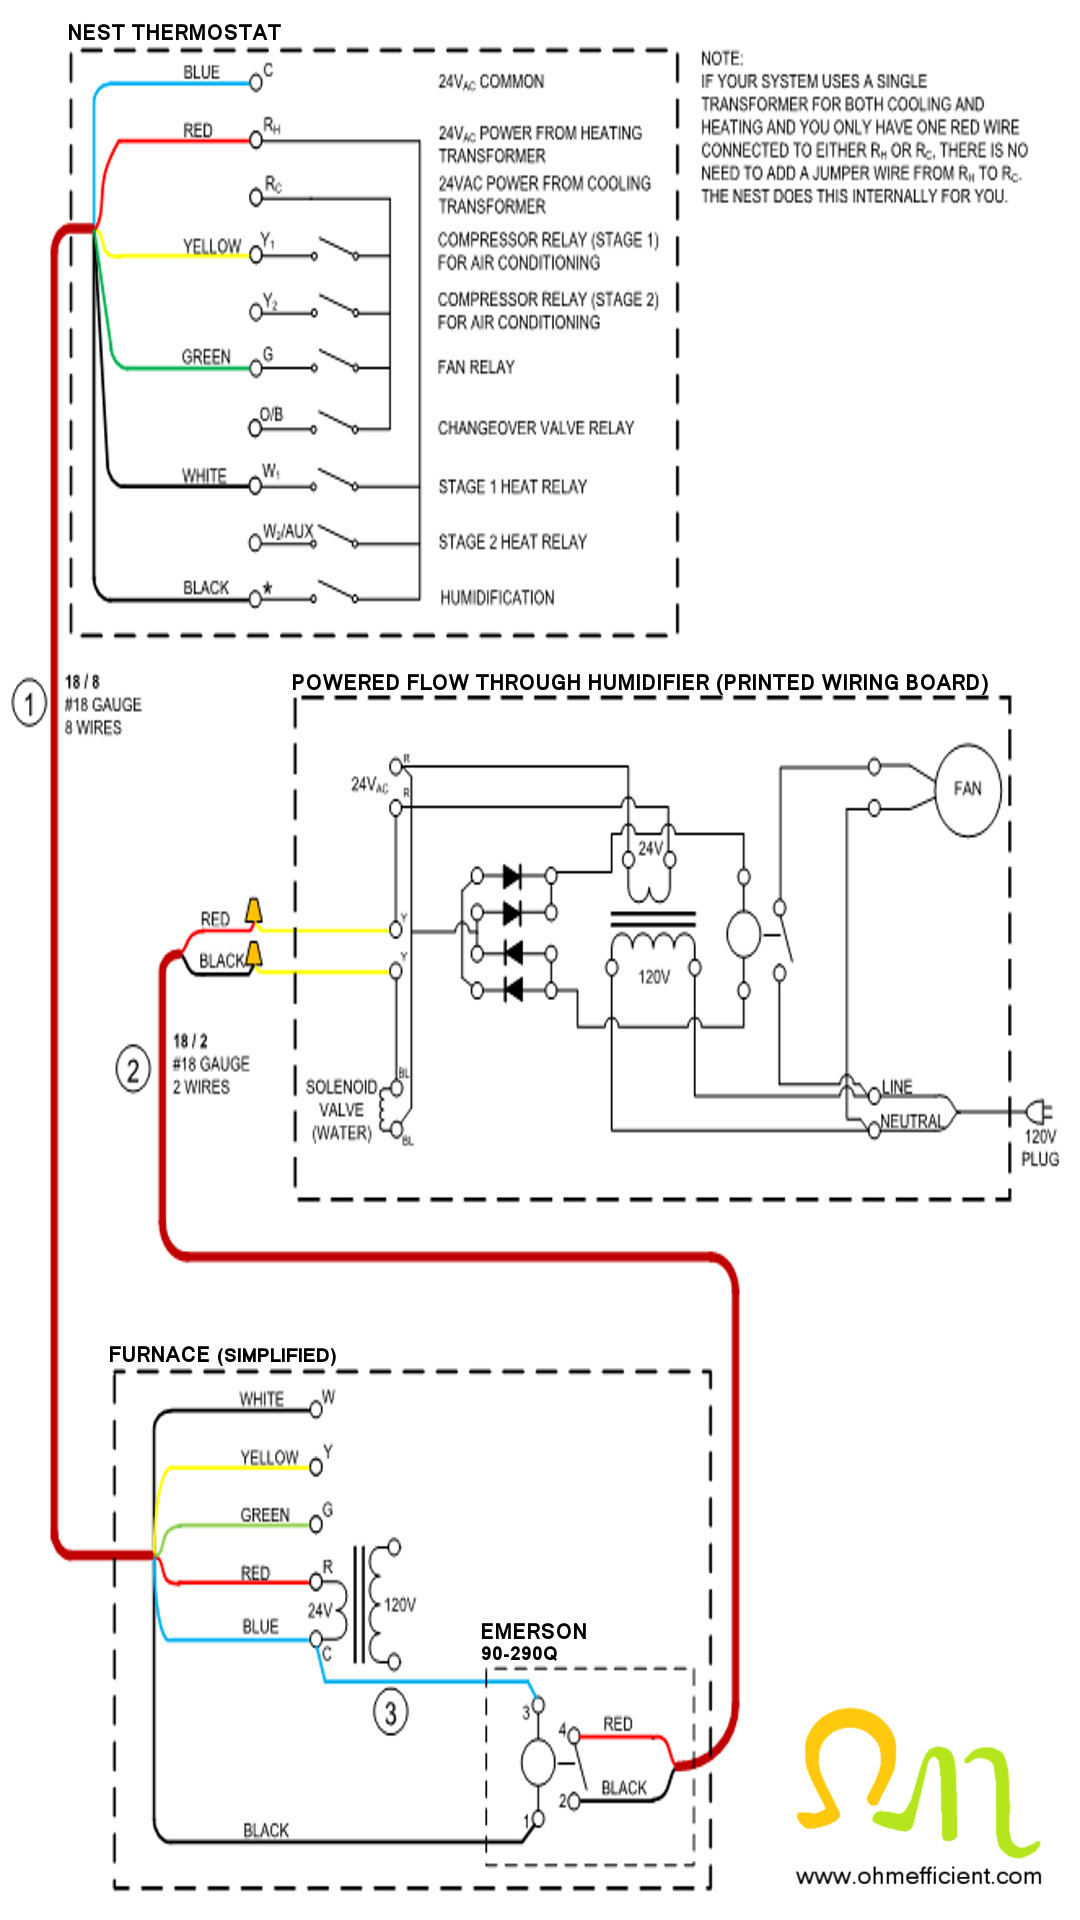 Incredible 8 Wire Thermostat Diagram Diagram Data Schema Wiring Digital Resources Funapmognl